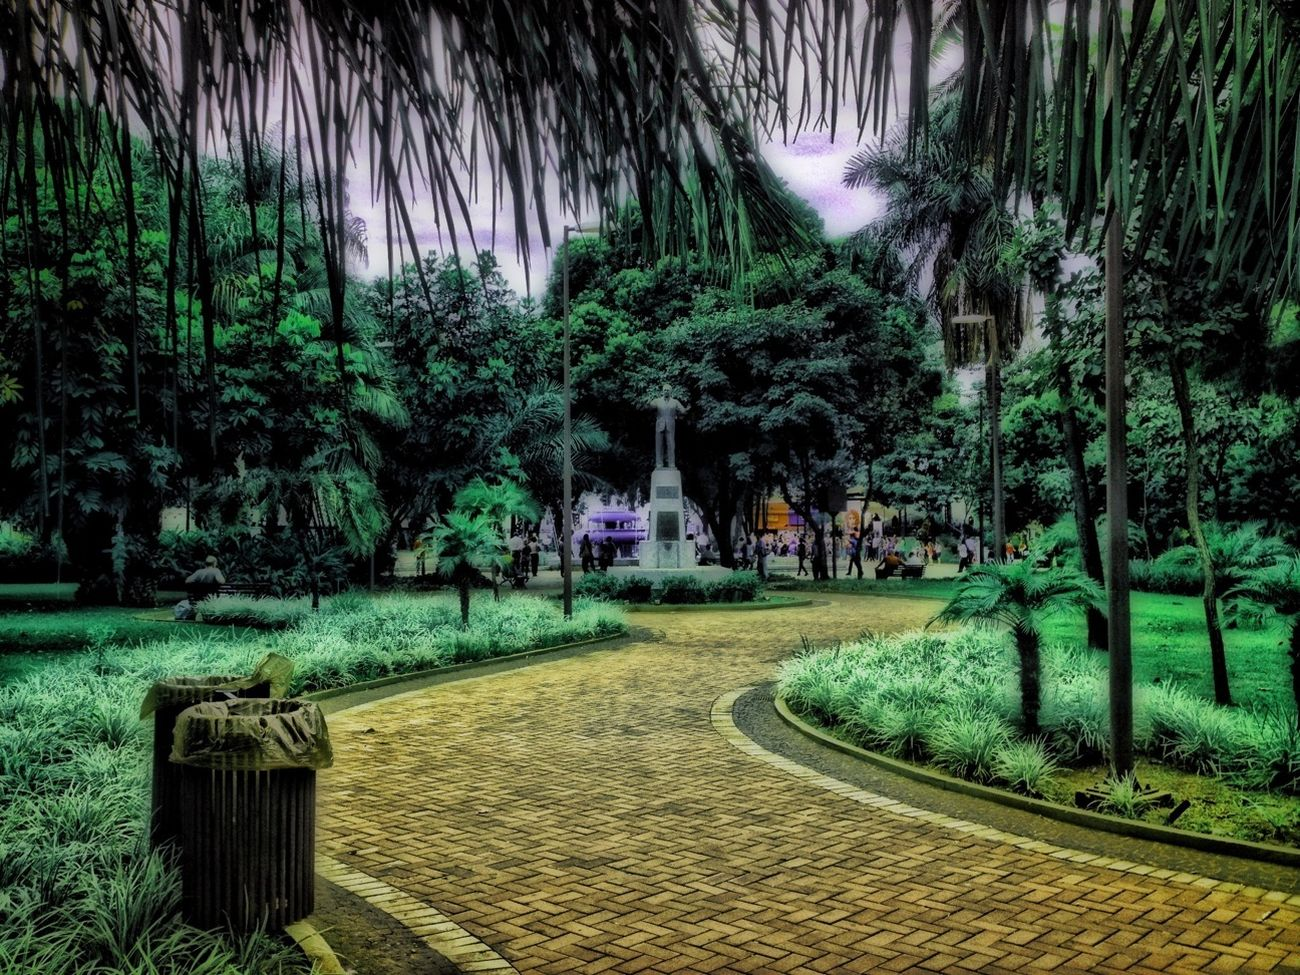 HDR Hdr Edit Hdr_Collection Hdr Remiximage Galeriaparalela Orton